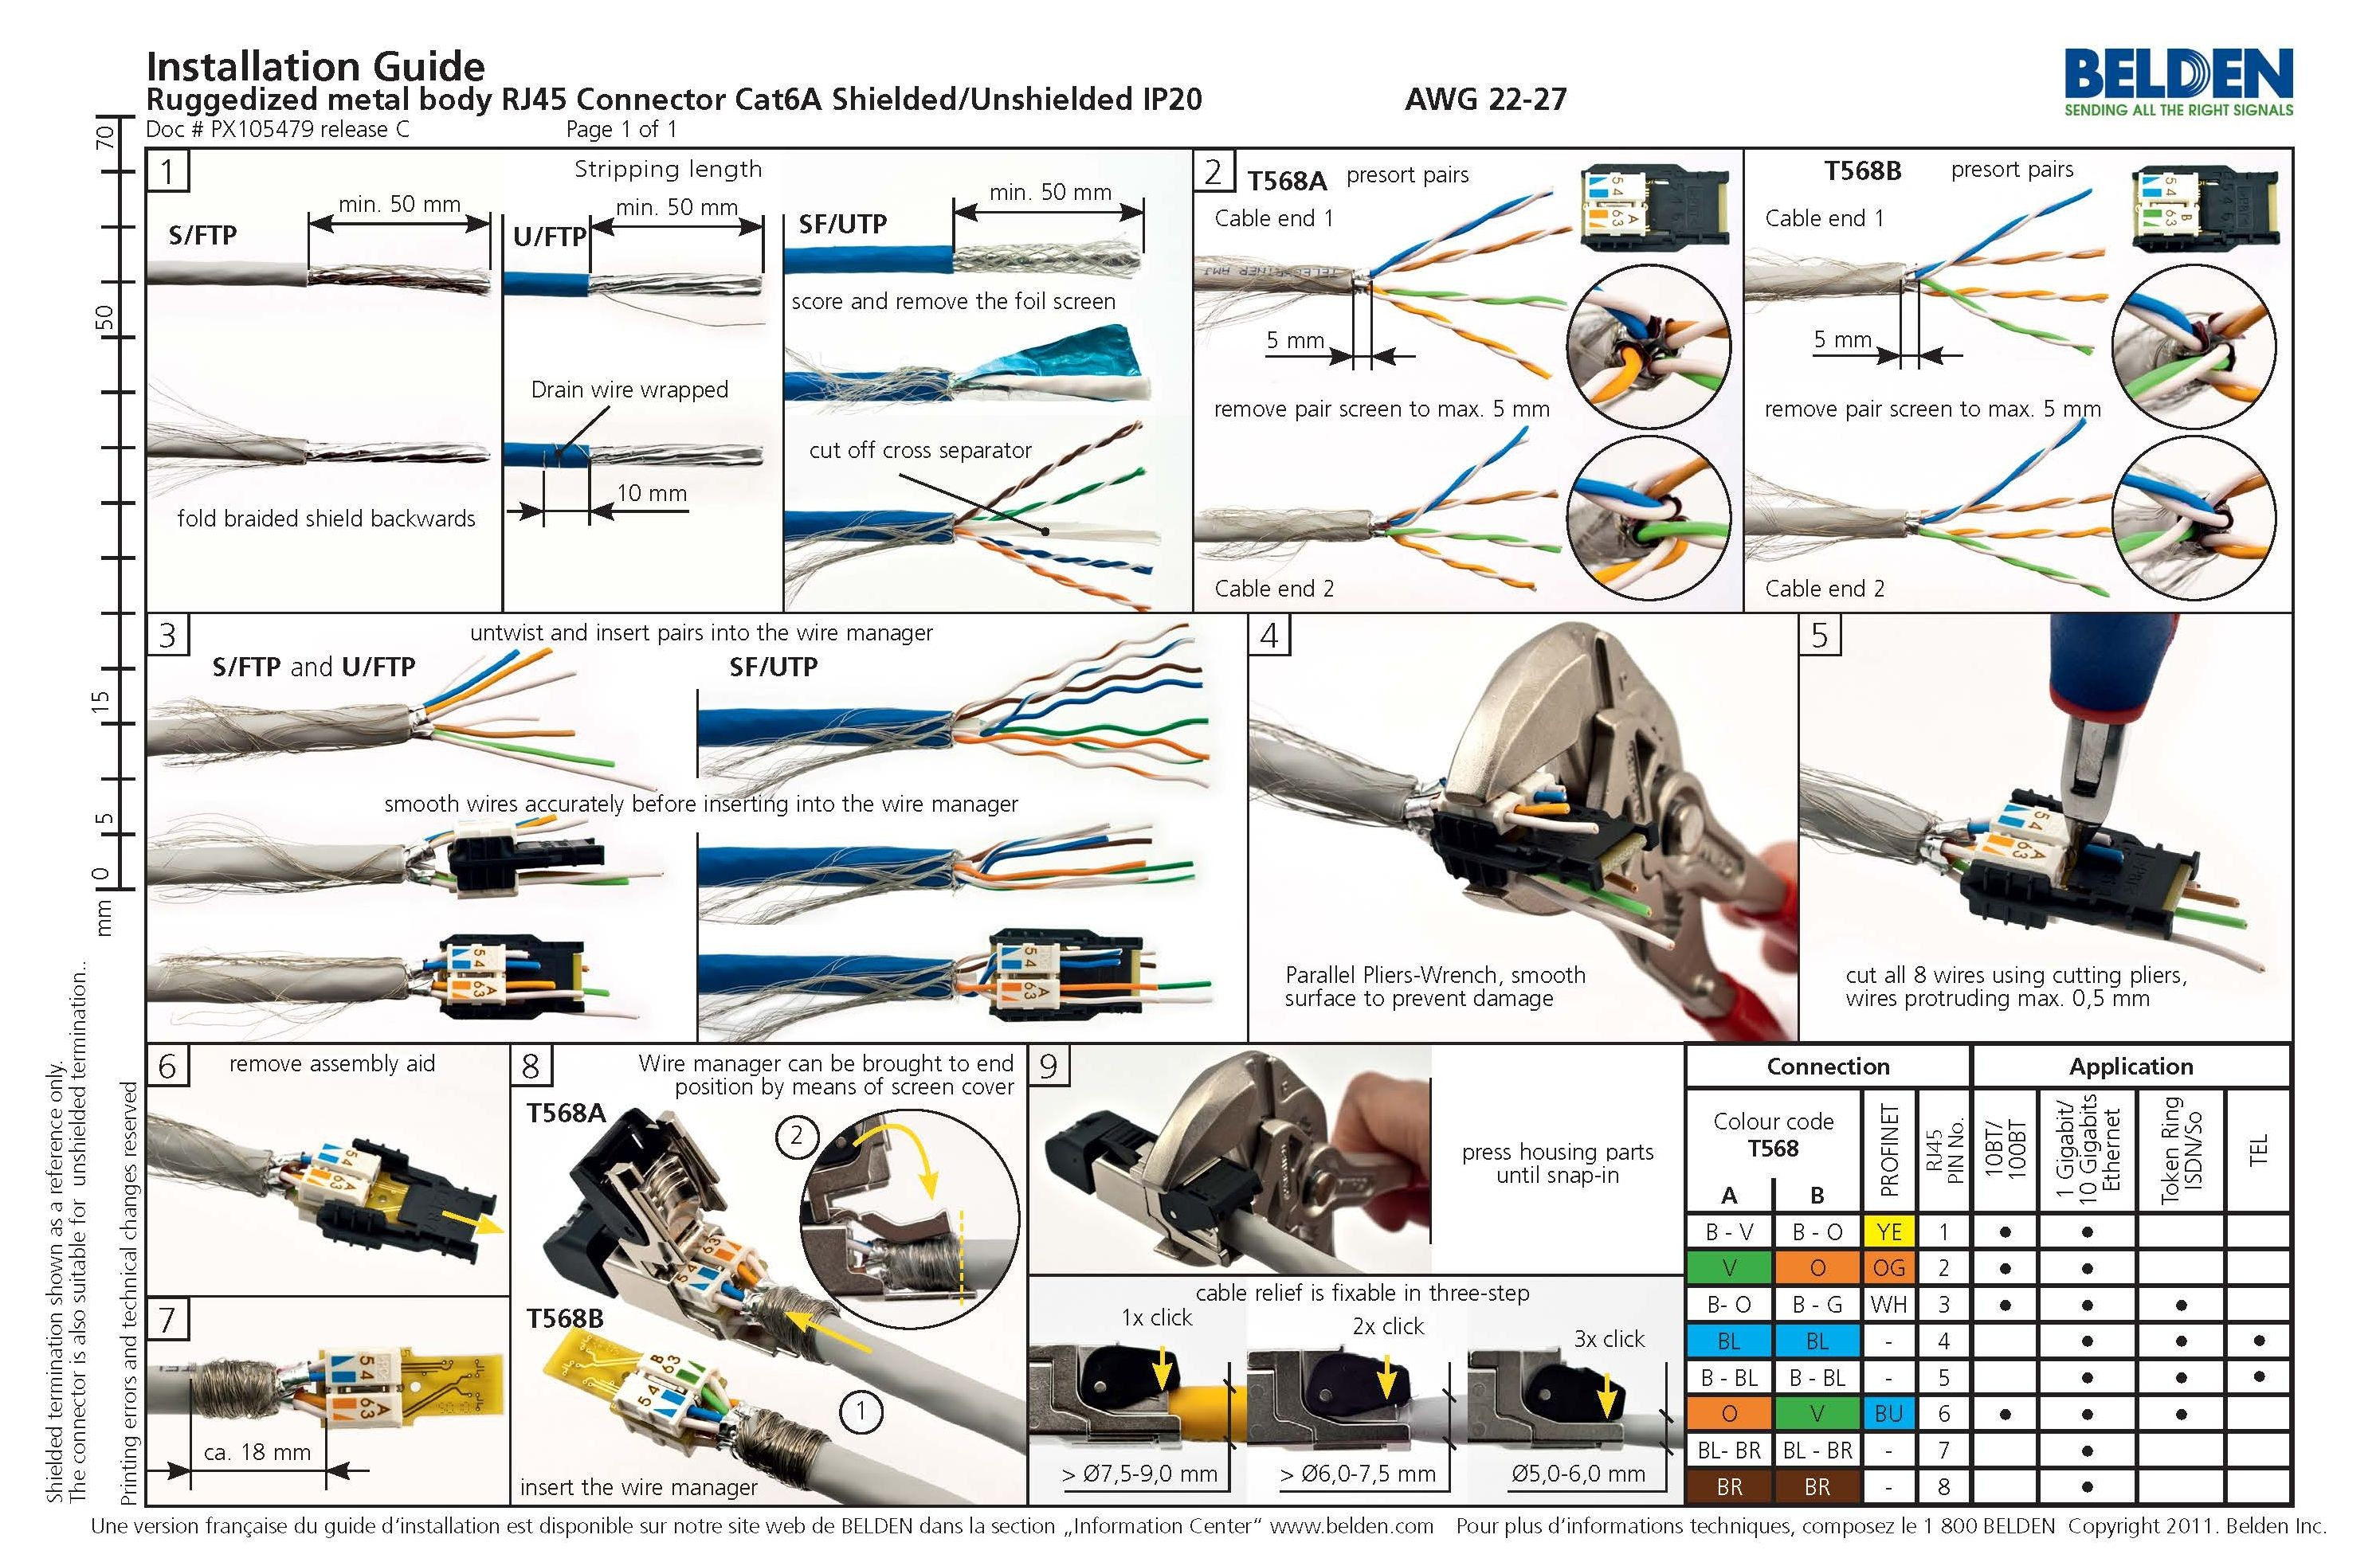 Cat 6 Wiring Diagram Stunning Rj45 Cat 6 Wiring Diagram S Everything You Need to Of Cat 6 Wiring Diagram